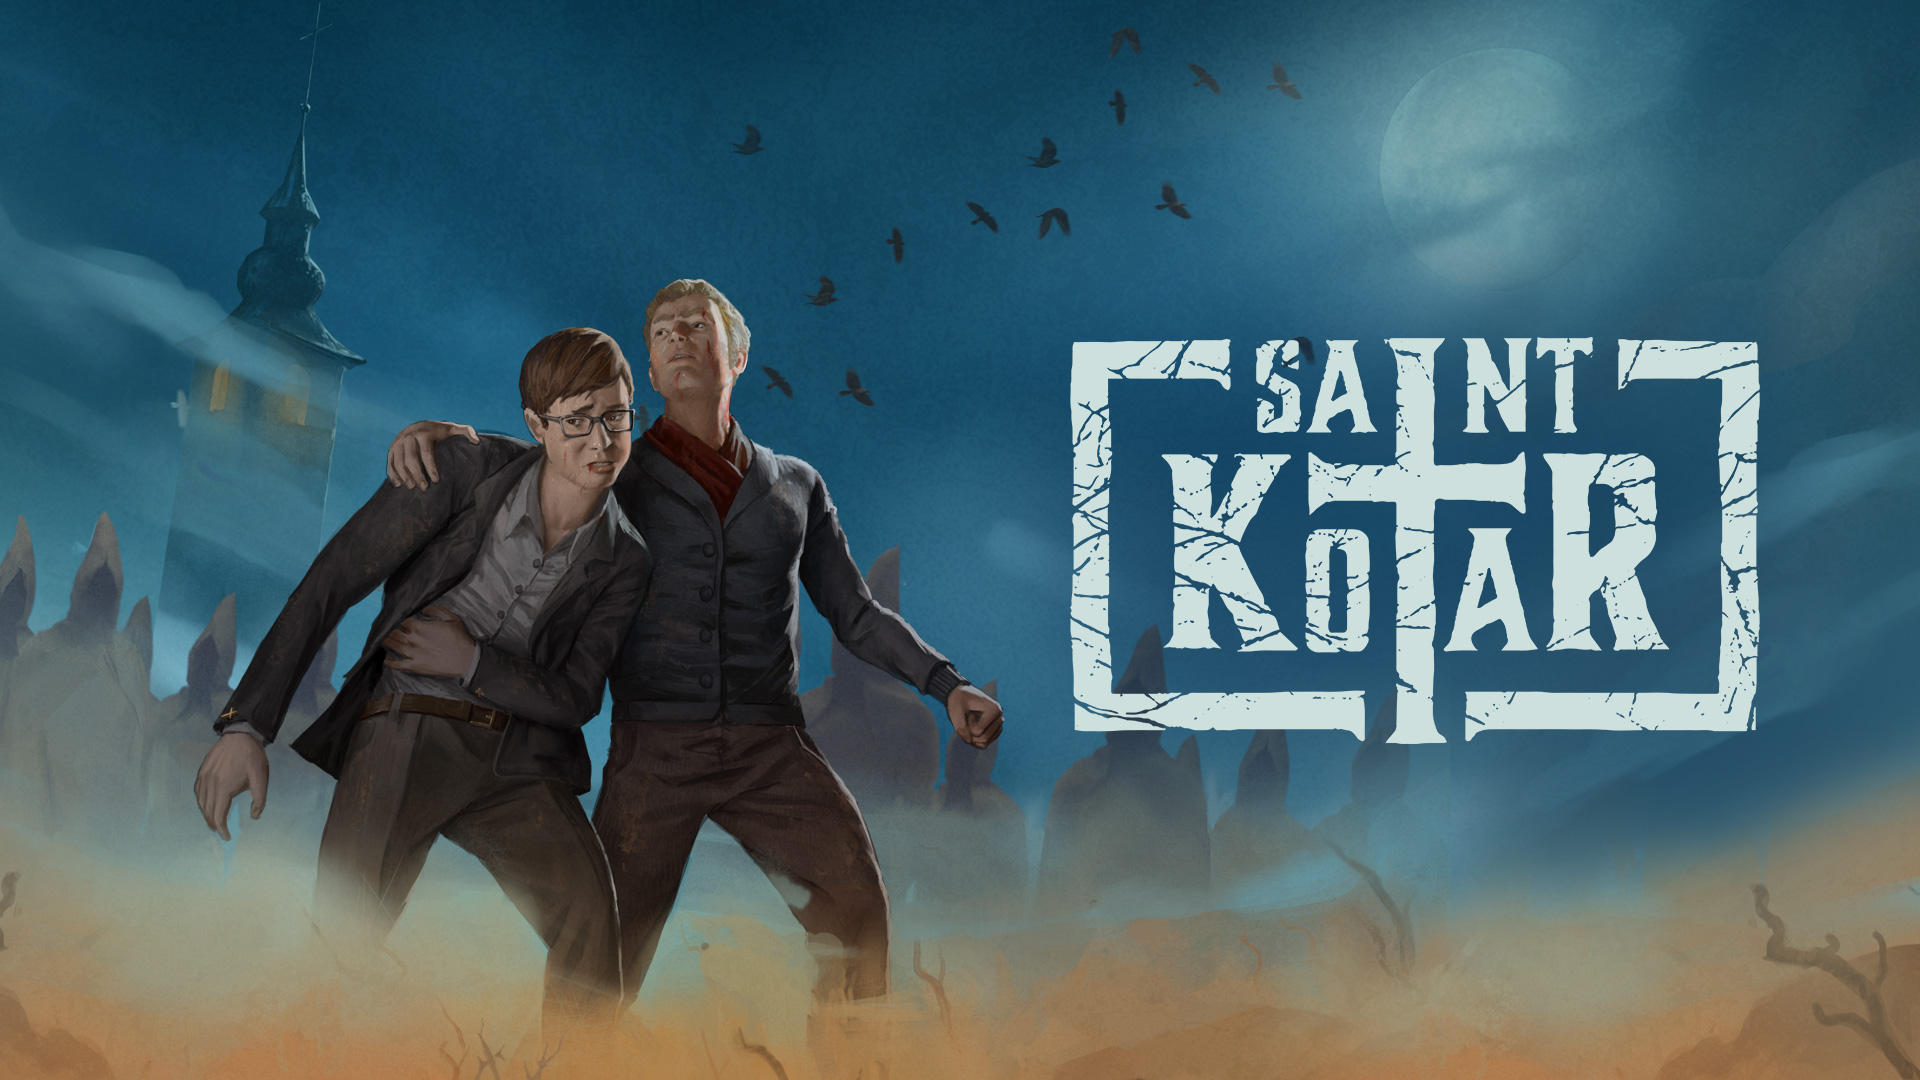 Psychological Horror Adventure 'Saint Kotar' launching on PC in October